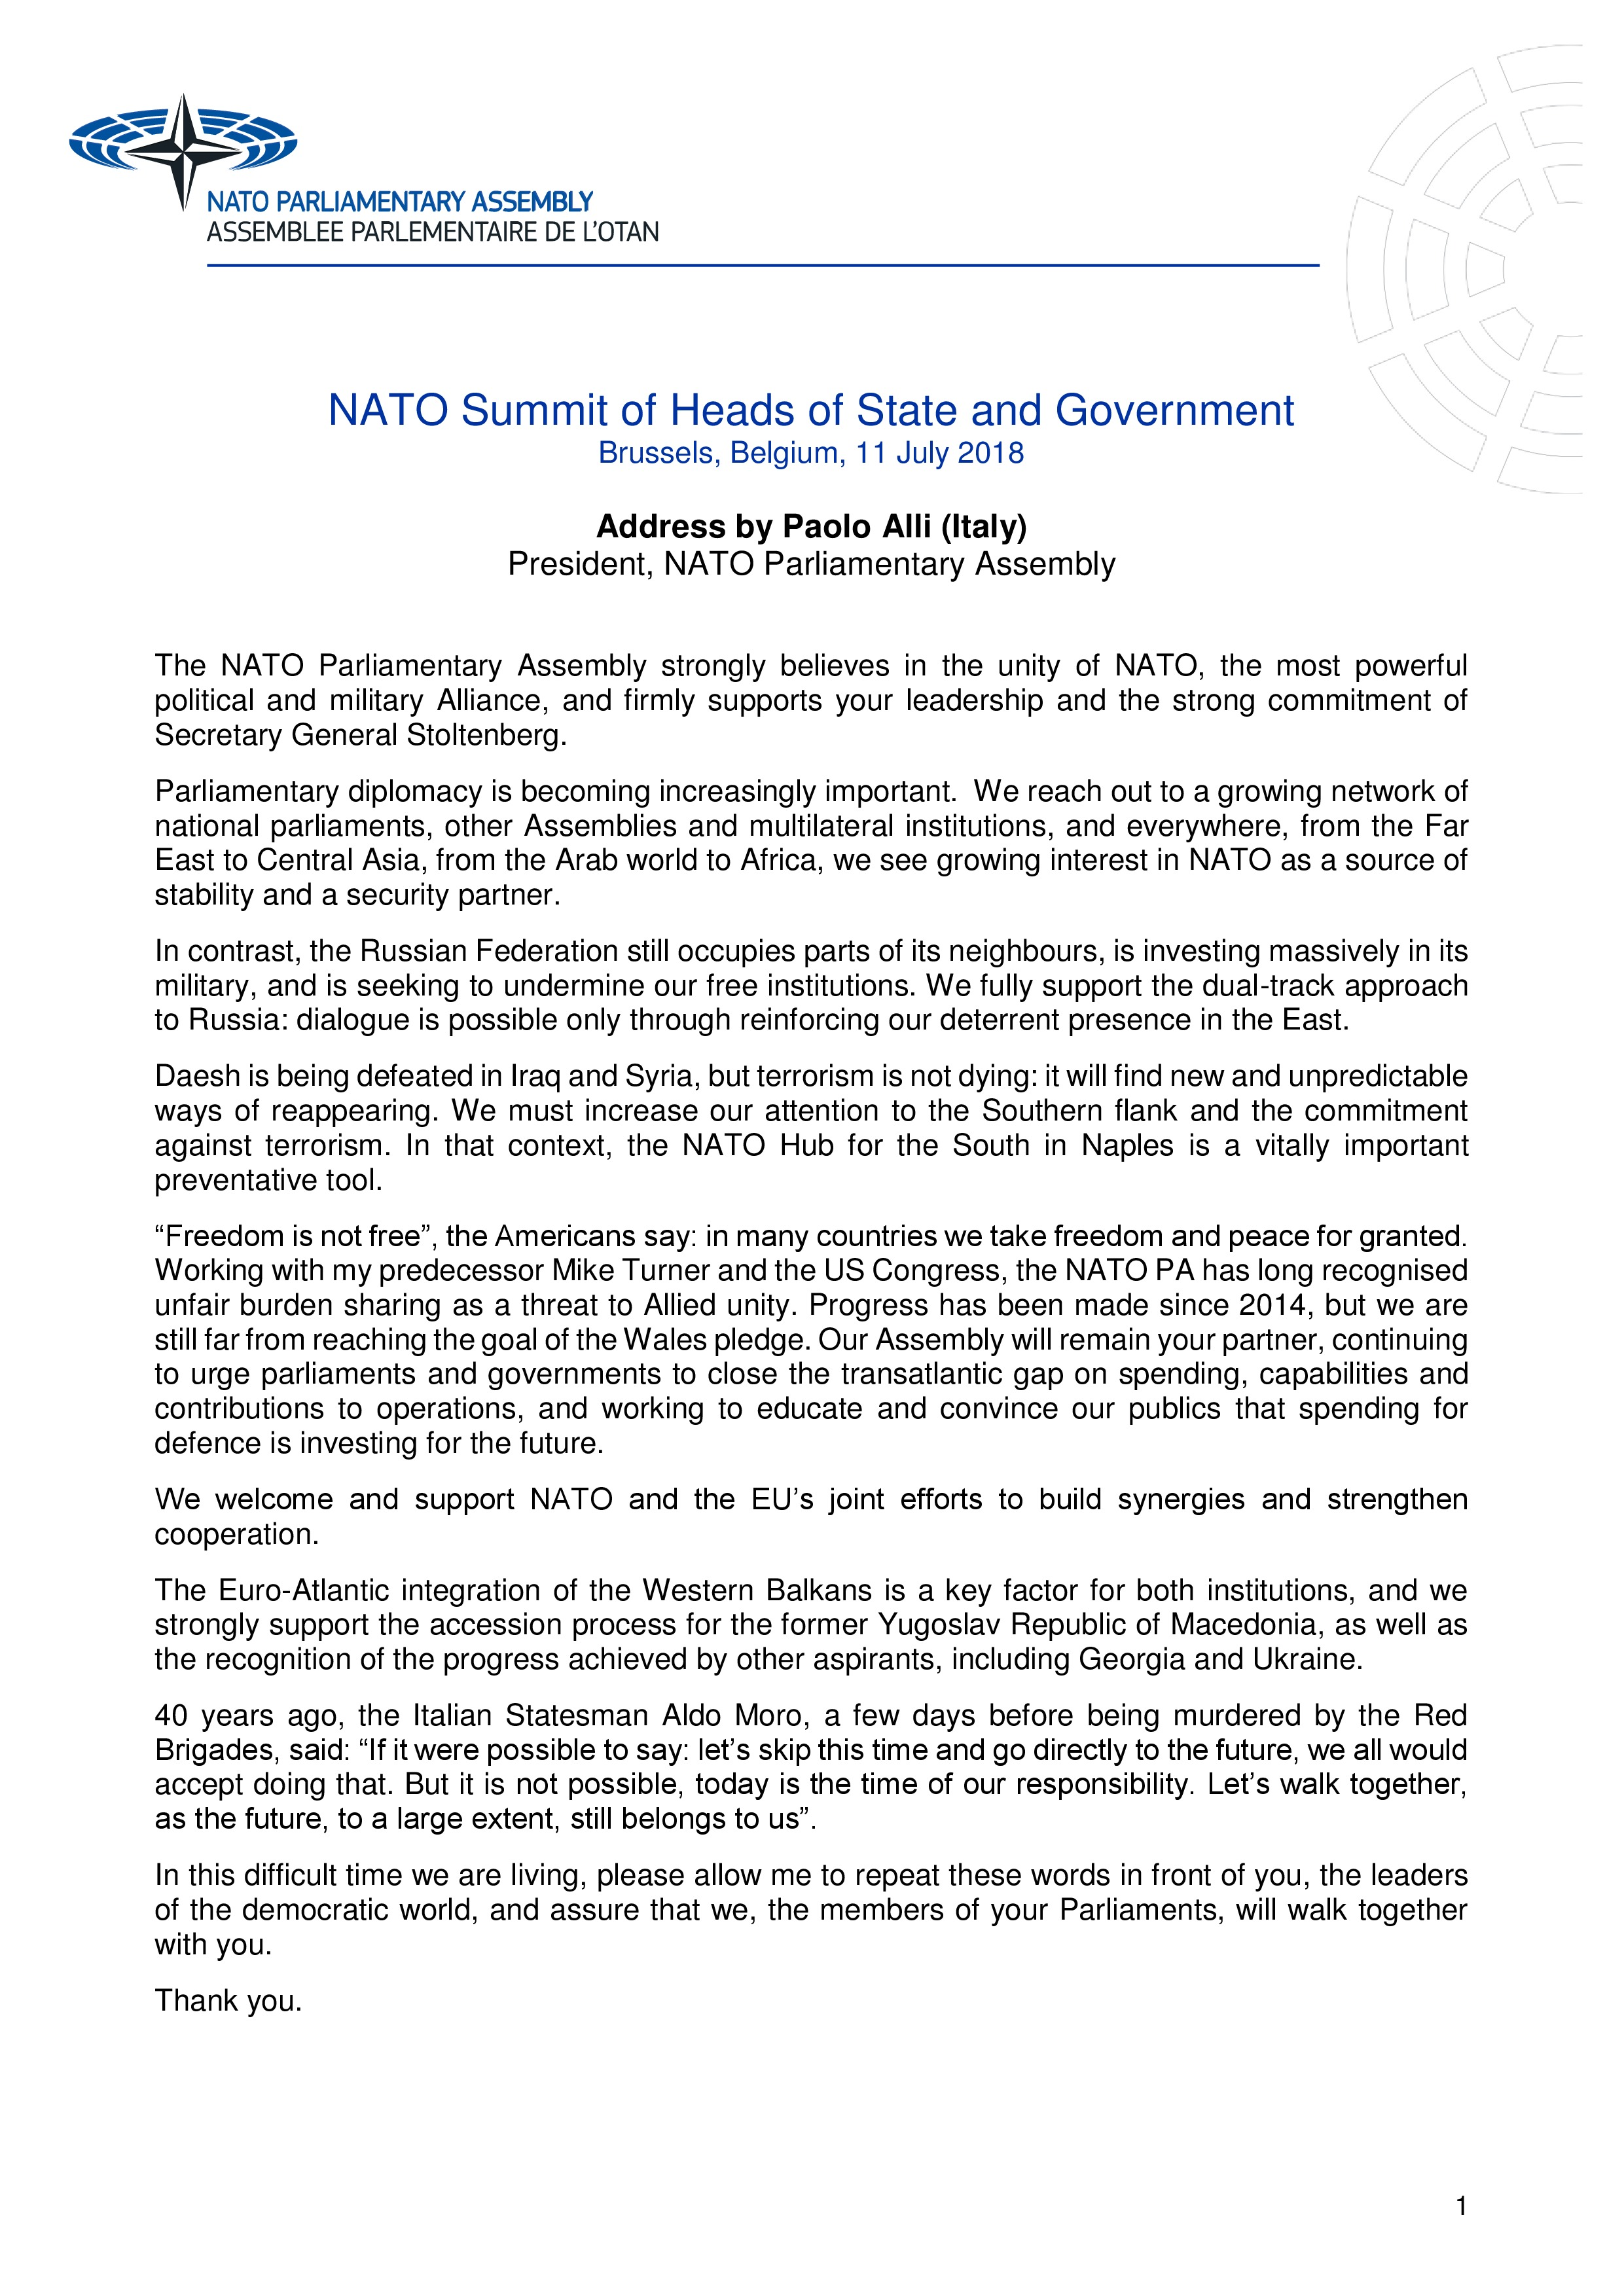 2018 - SPEECH BY PAOLO ALLI AT THE NATO SUMMIT IN BRUSSELS 520c545facd1